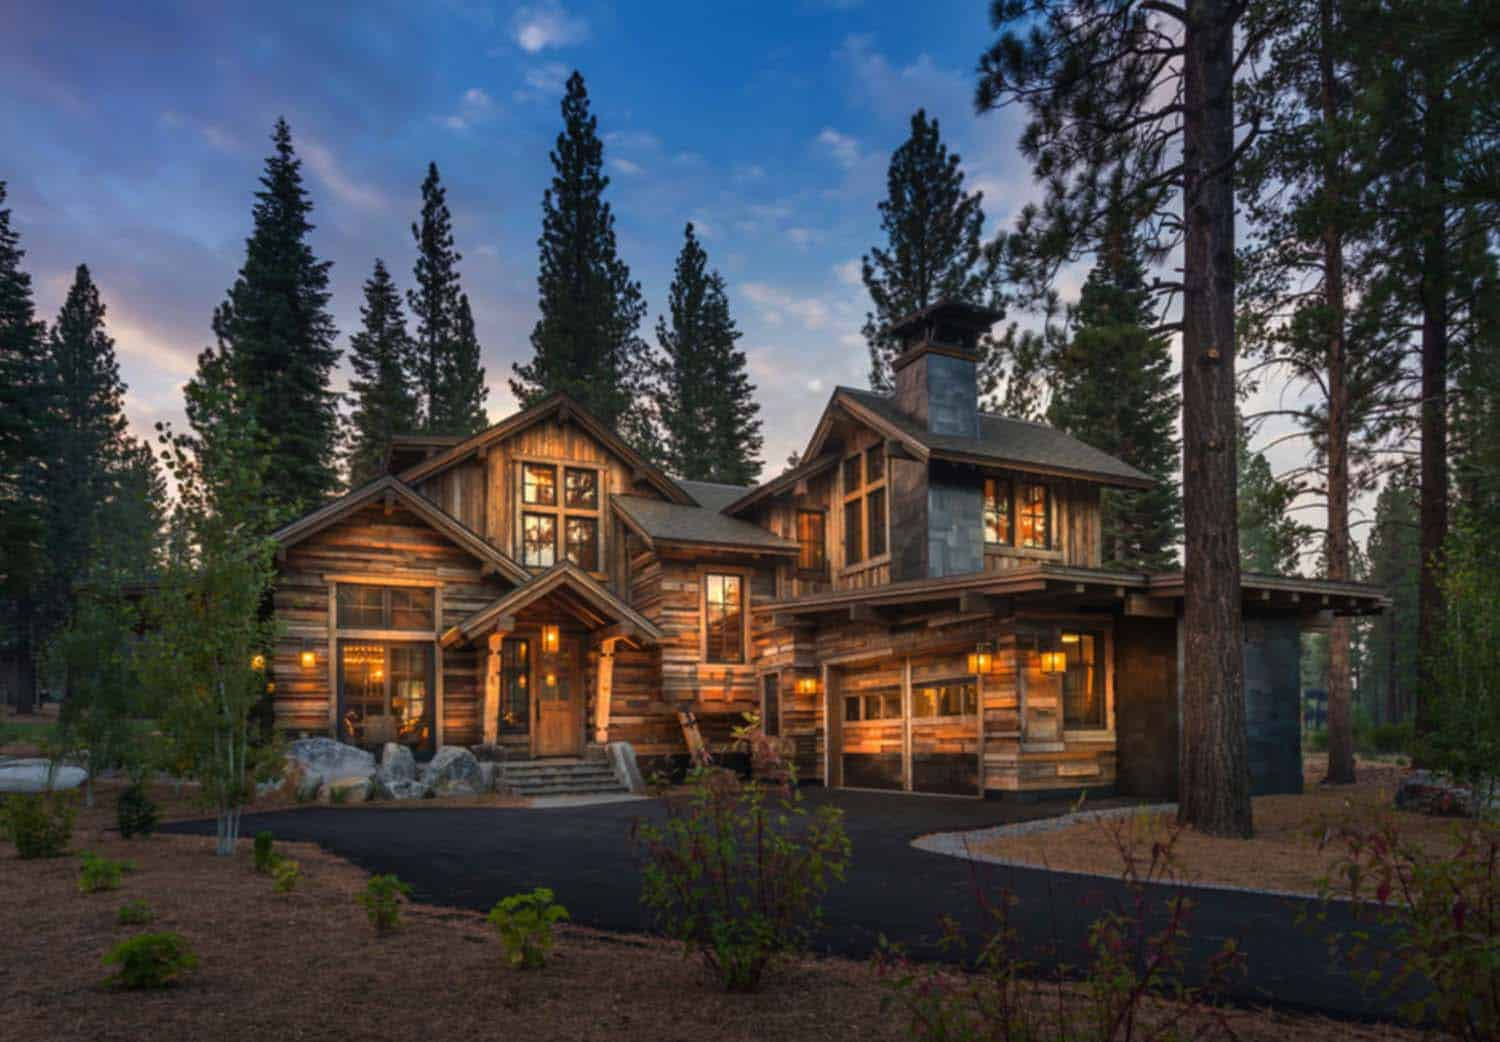 Cozy mountain style cabin getaway in martis camp california for Mtn house